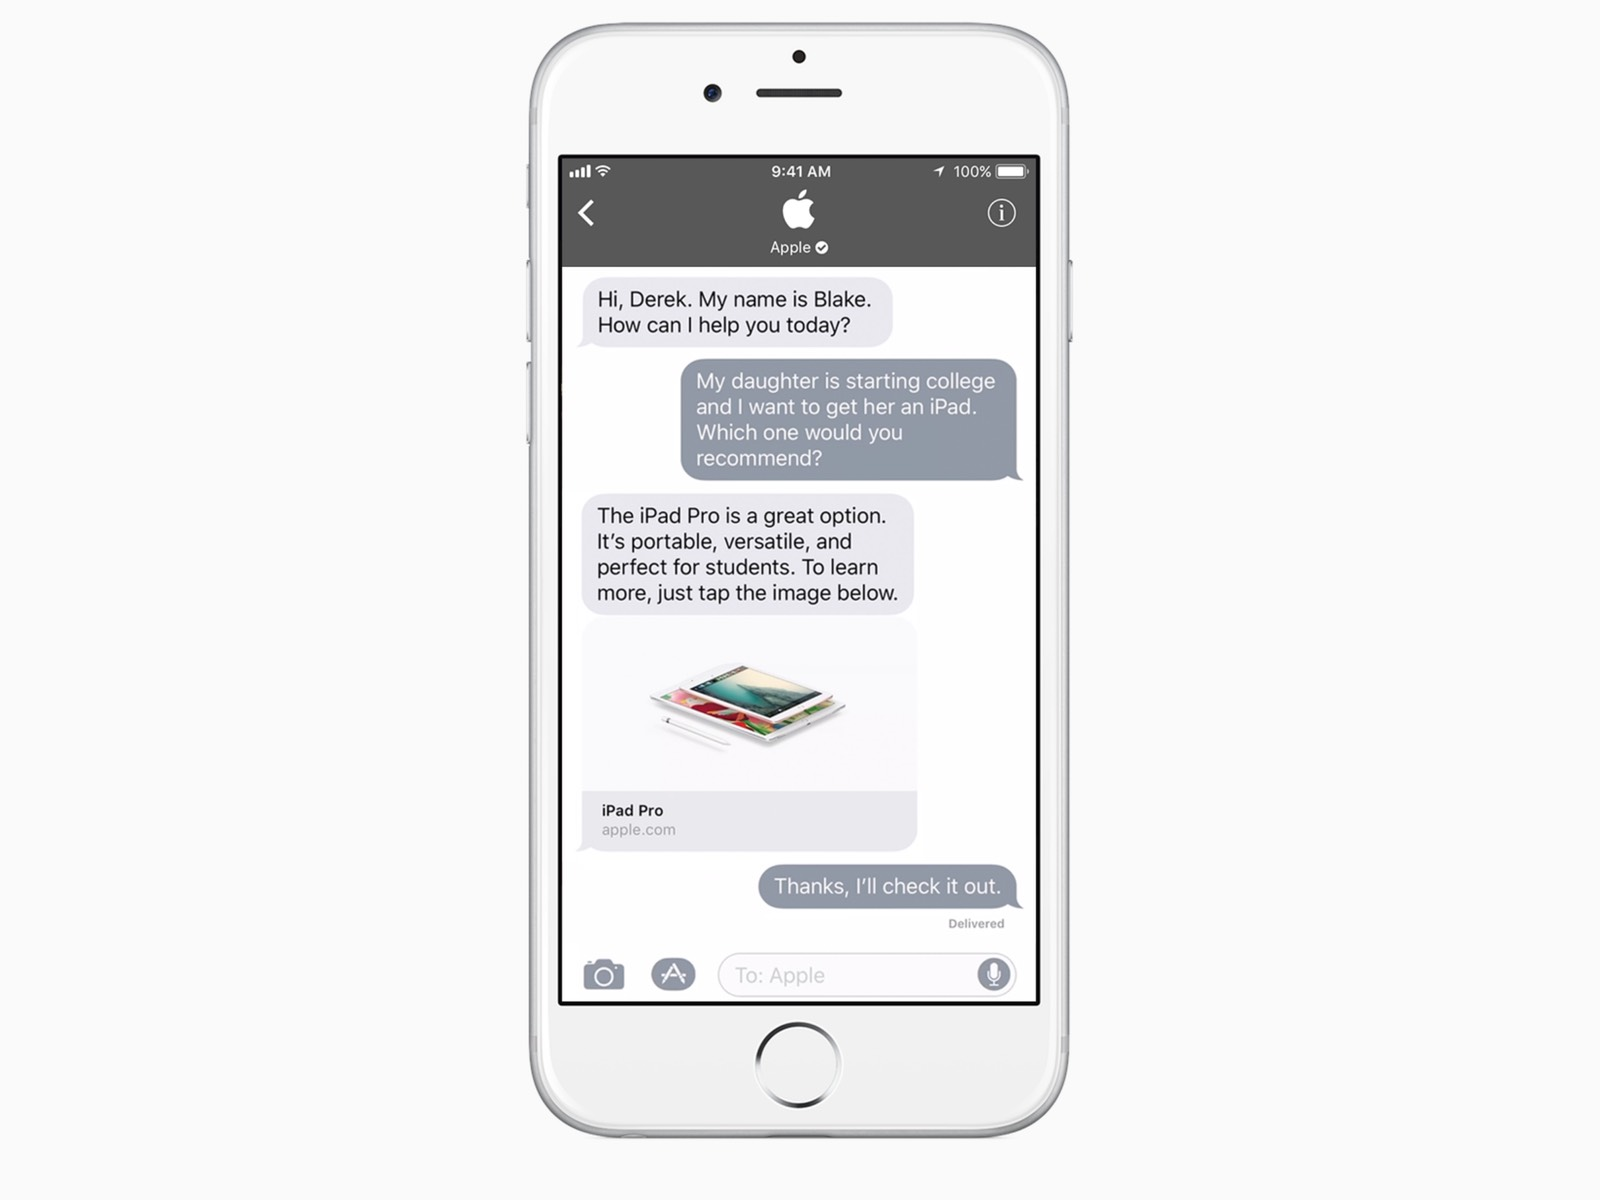 Screenshot of a customer interaction with Apple in iMessage as part of Apple Business Chat.